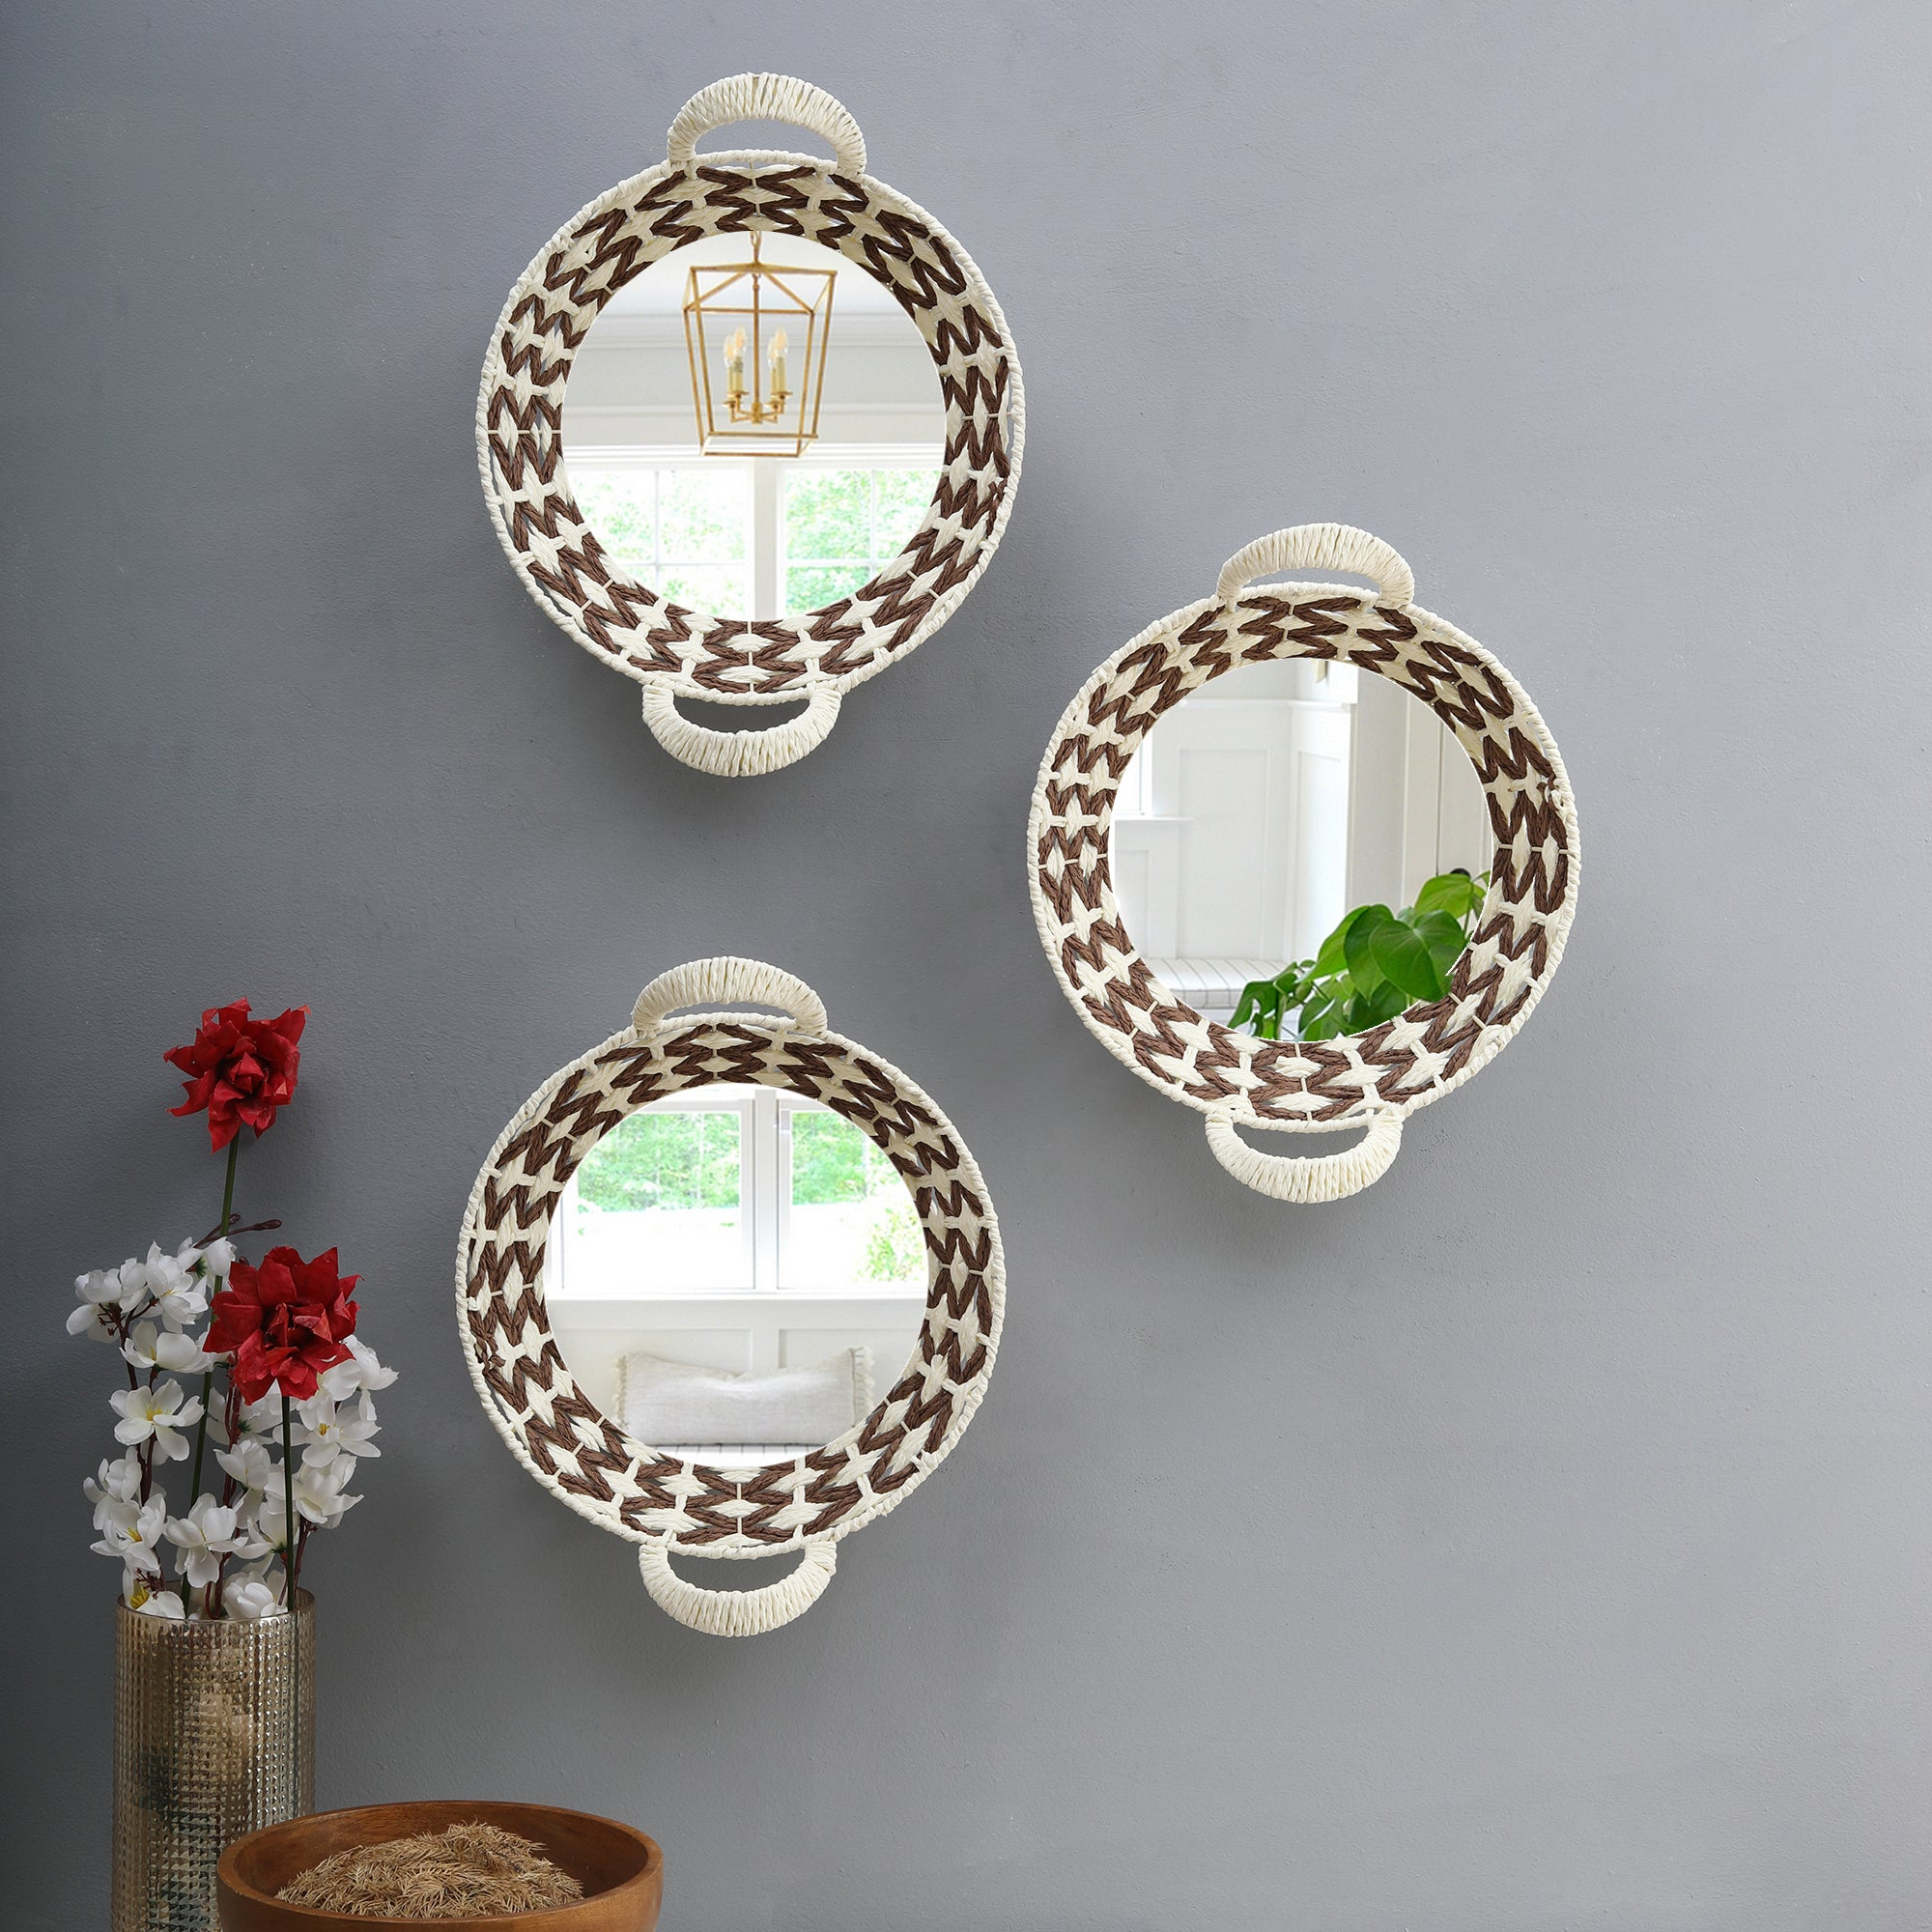 Bohemian Style Wall Mirrors (Round) - Set of 3